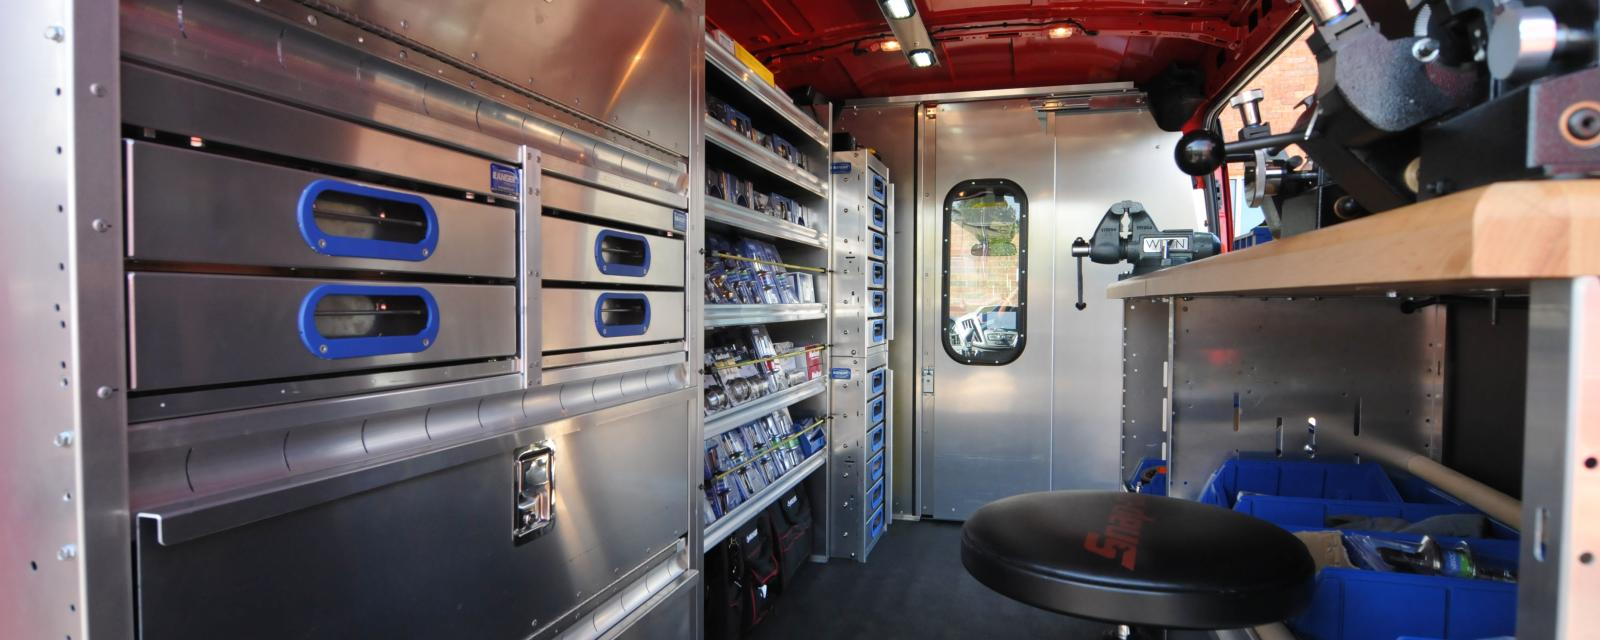 Mobile Locksmith Van - Interior